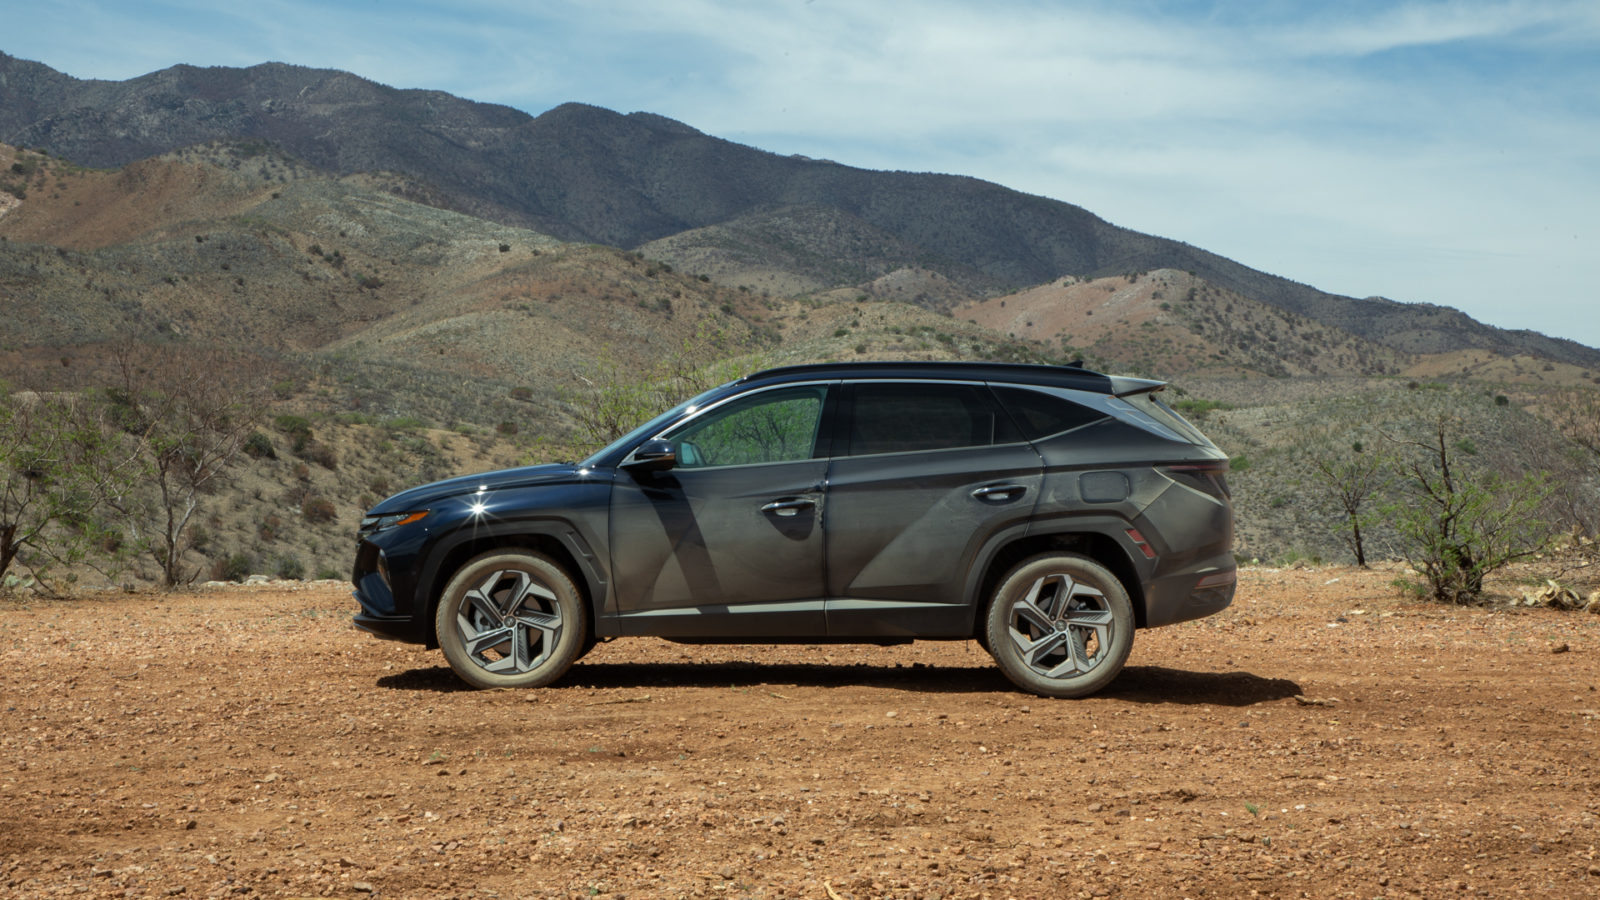 2022-hyundai-tucson-and-hybrid-tested,-hongqi-s9-hypercar-debuts:-what's-new-@-the-car-connection